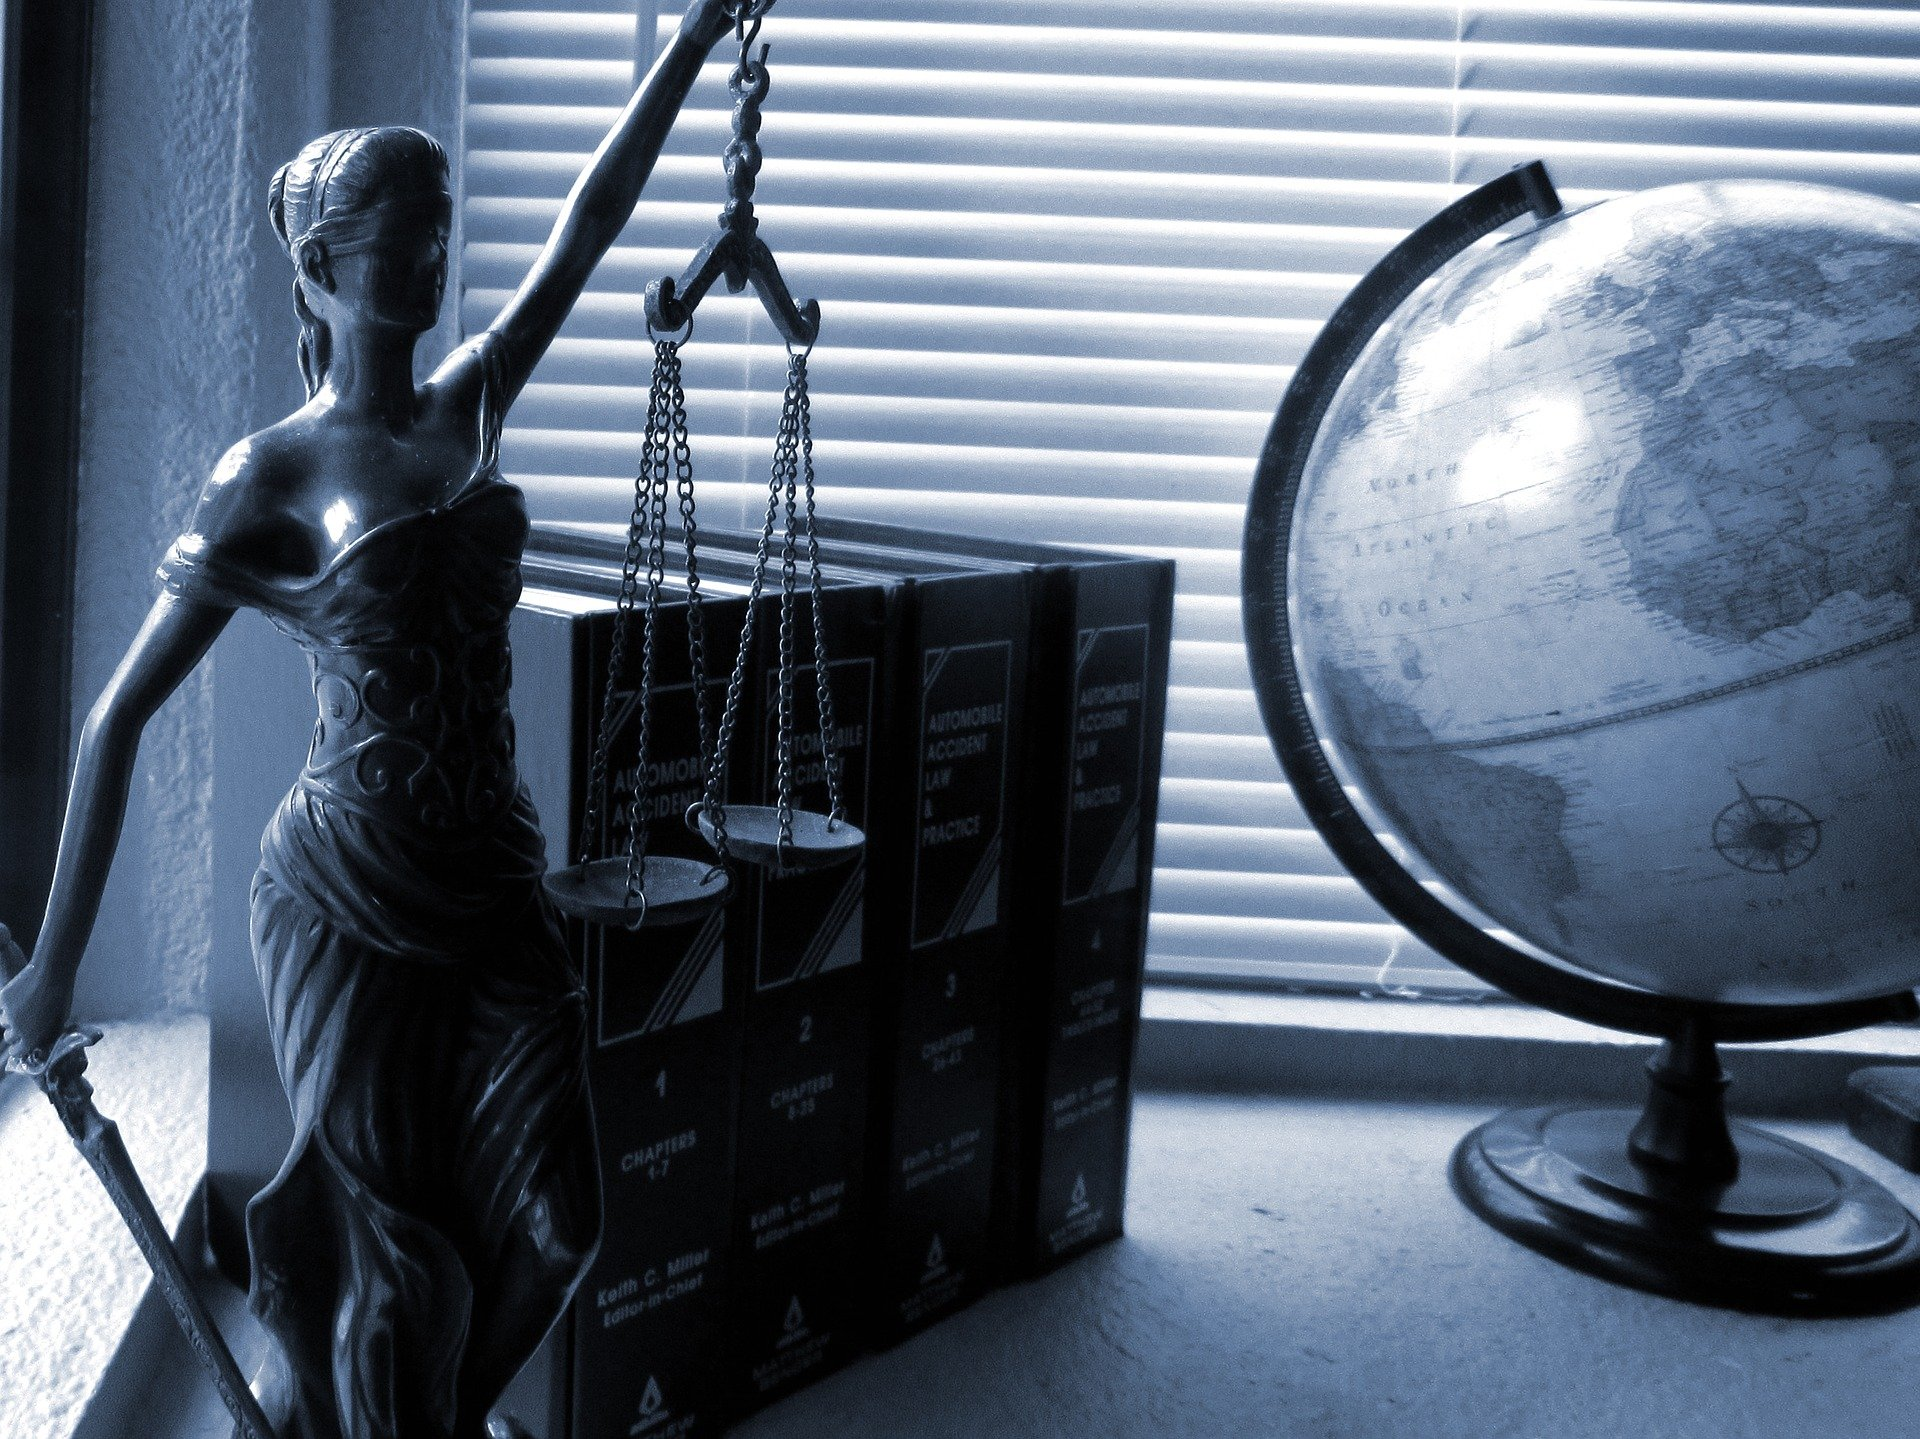 Lady justice, books, and a globe on a desk